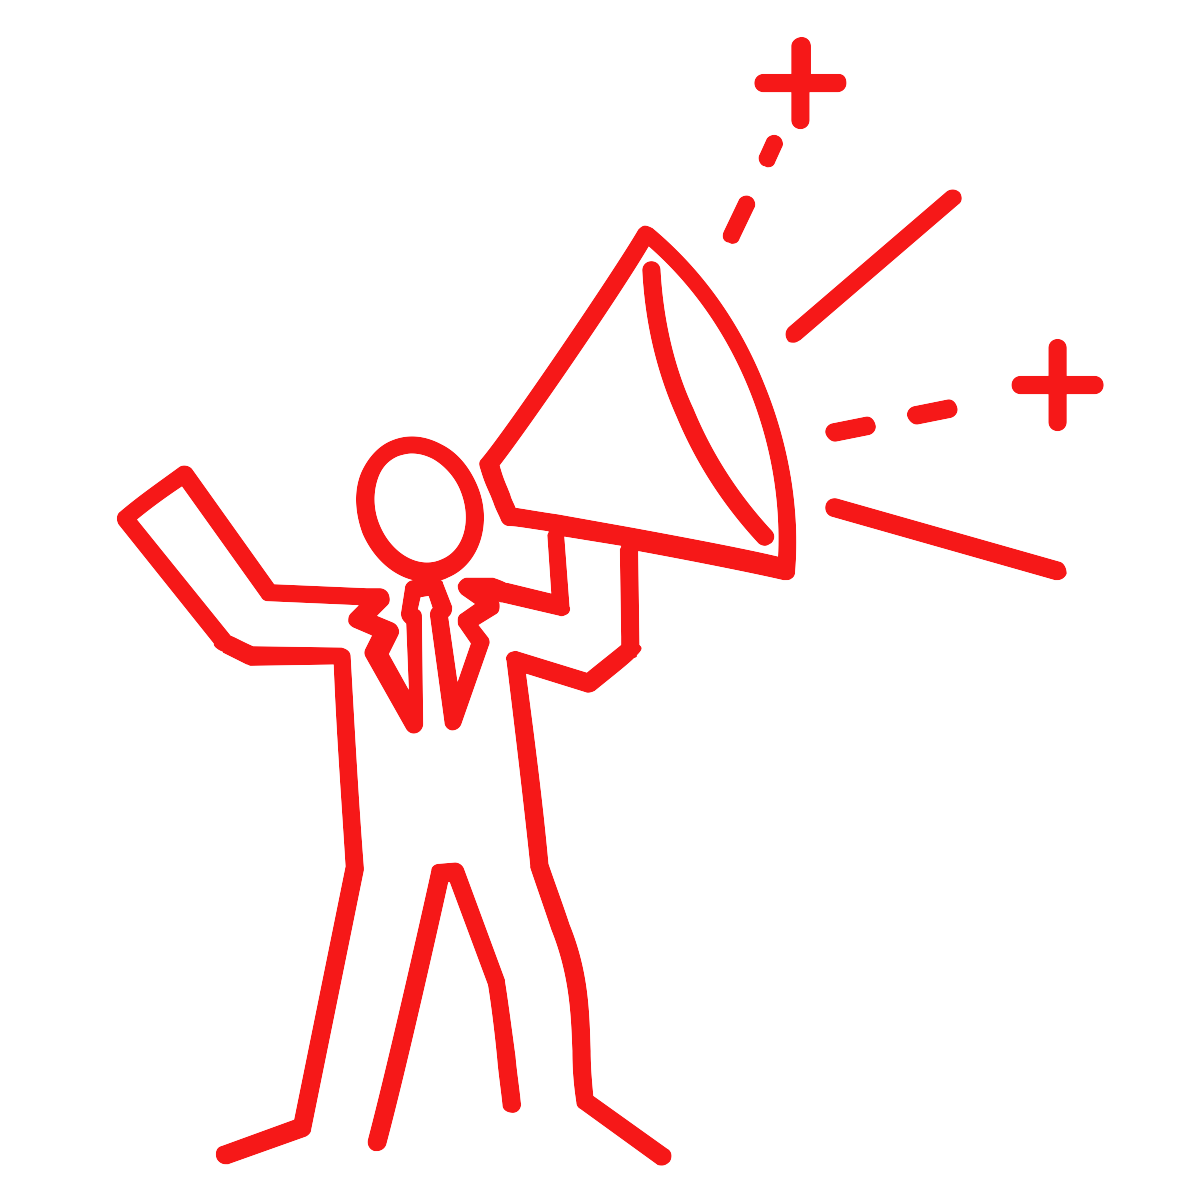 line drawing of a person speaking through a megaphone